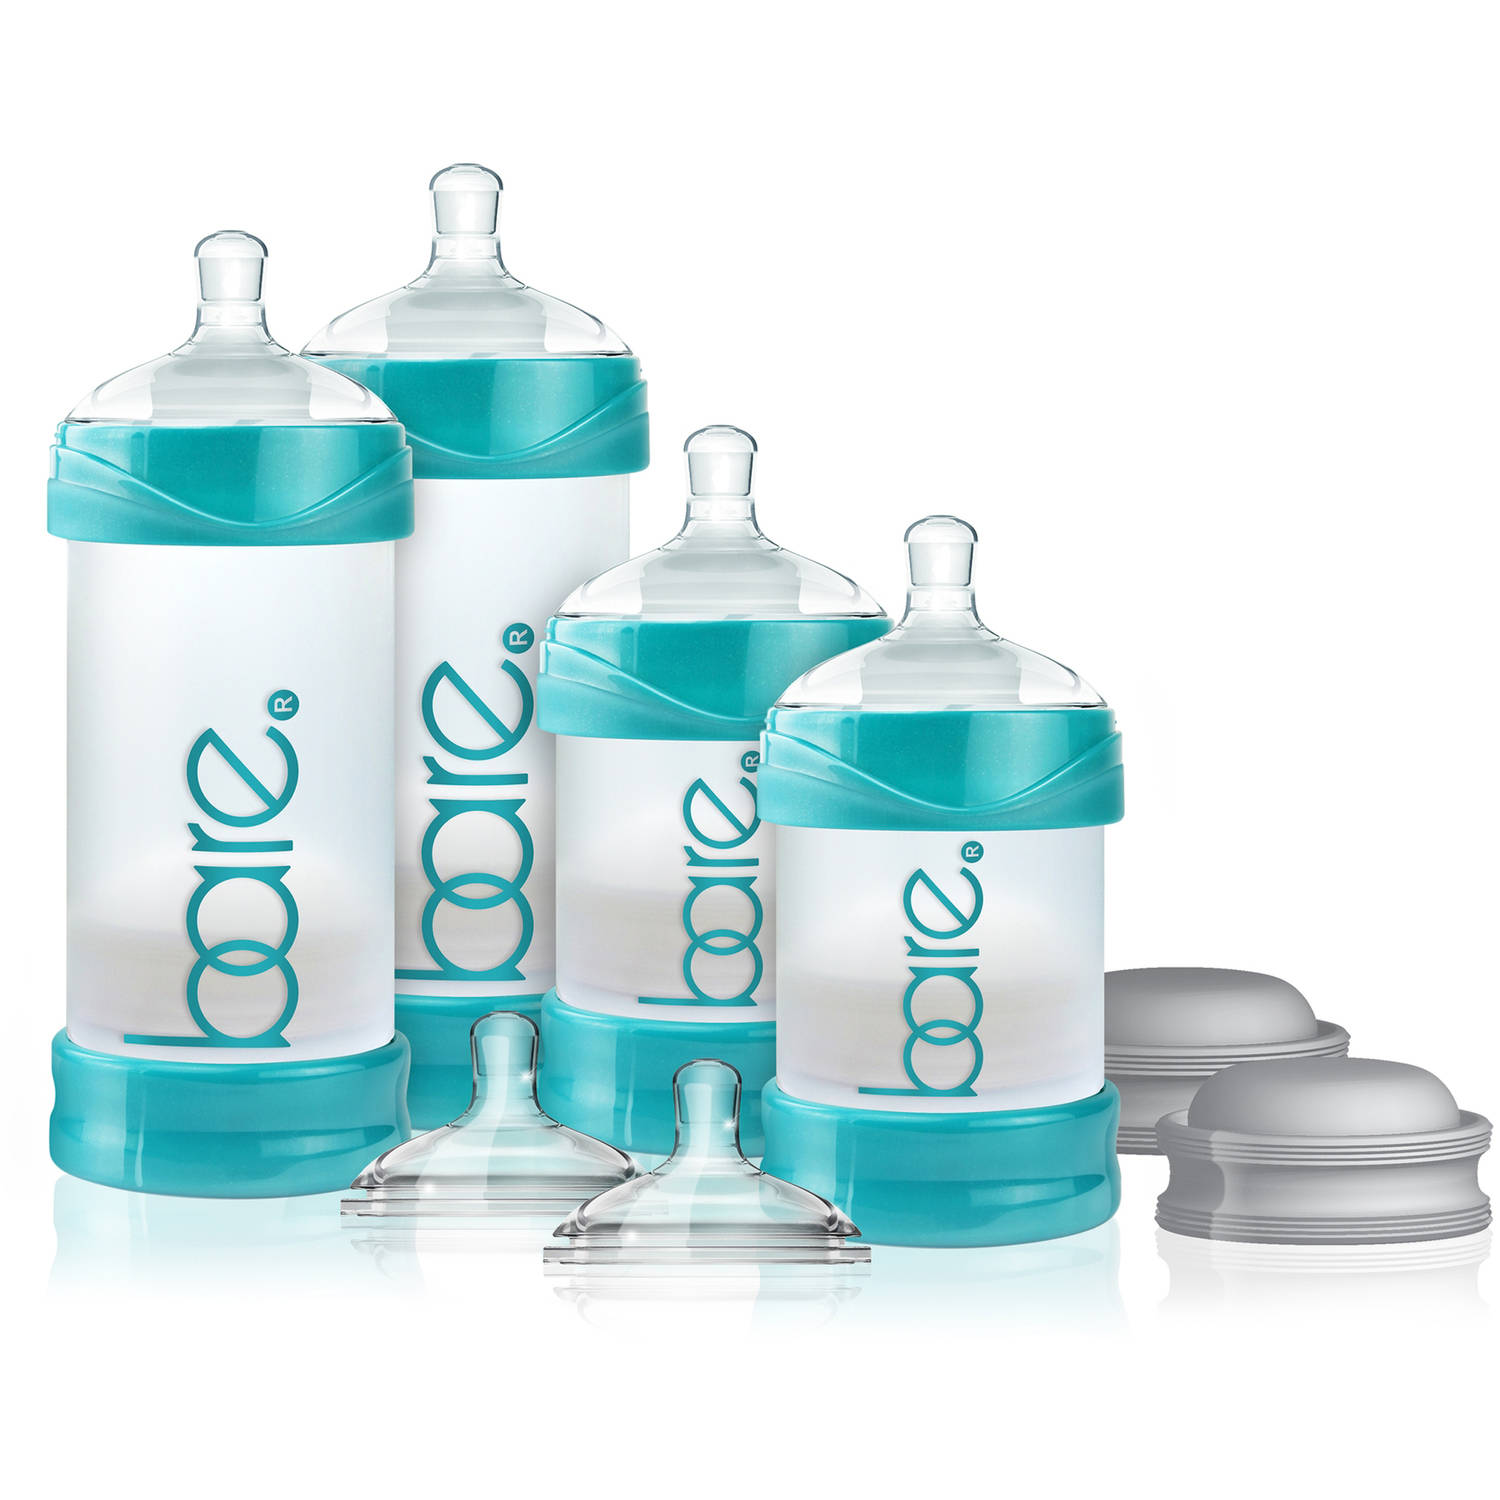 BARE Air-free Starter Set with Easy-latch Nipples, Air-free, Anti Reflux, Anticolic by BARE AIR-FREE FEEDING SYSTEM